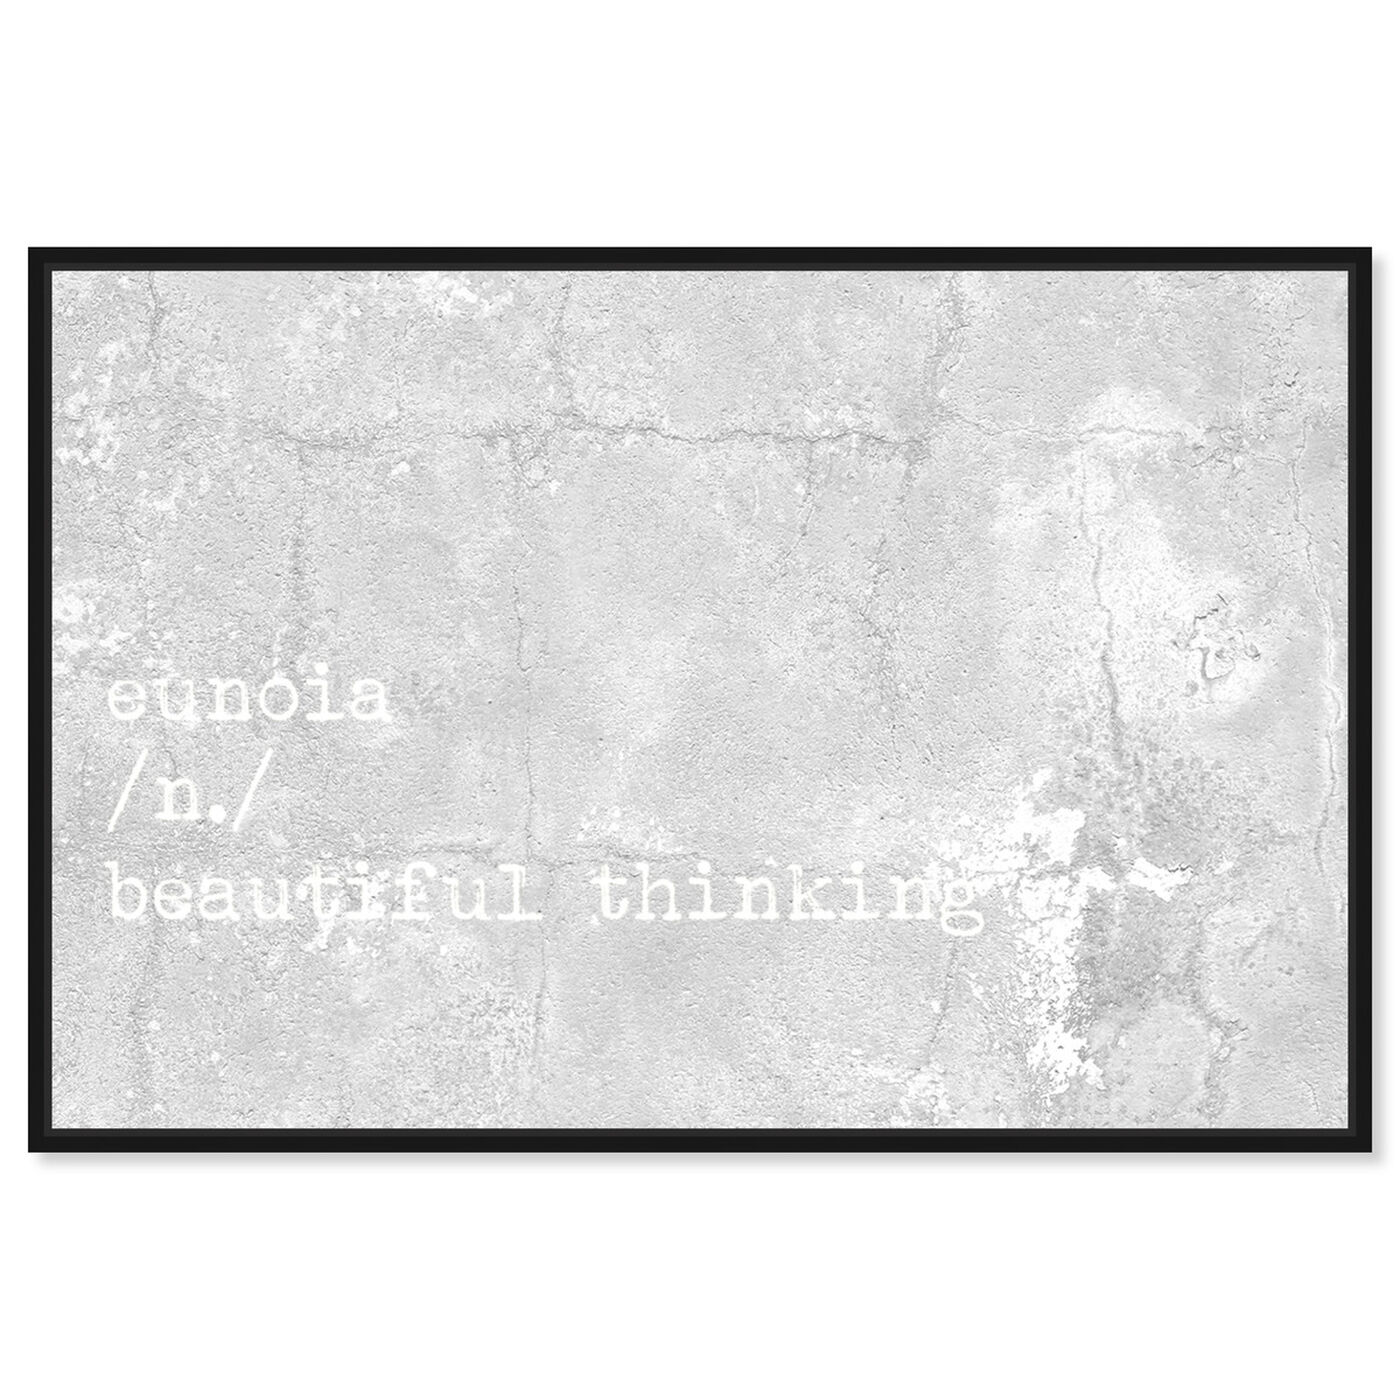 Front view of Beautiful Thinking featuring typography and quotes and beauty quotes and sayings art.